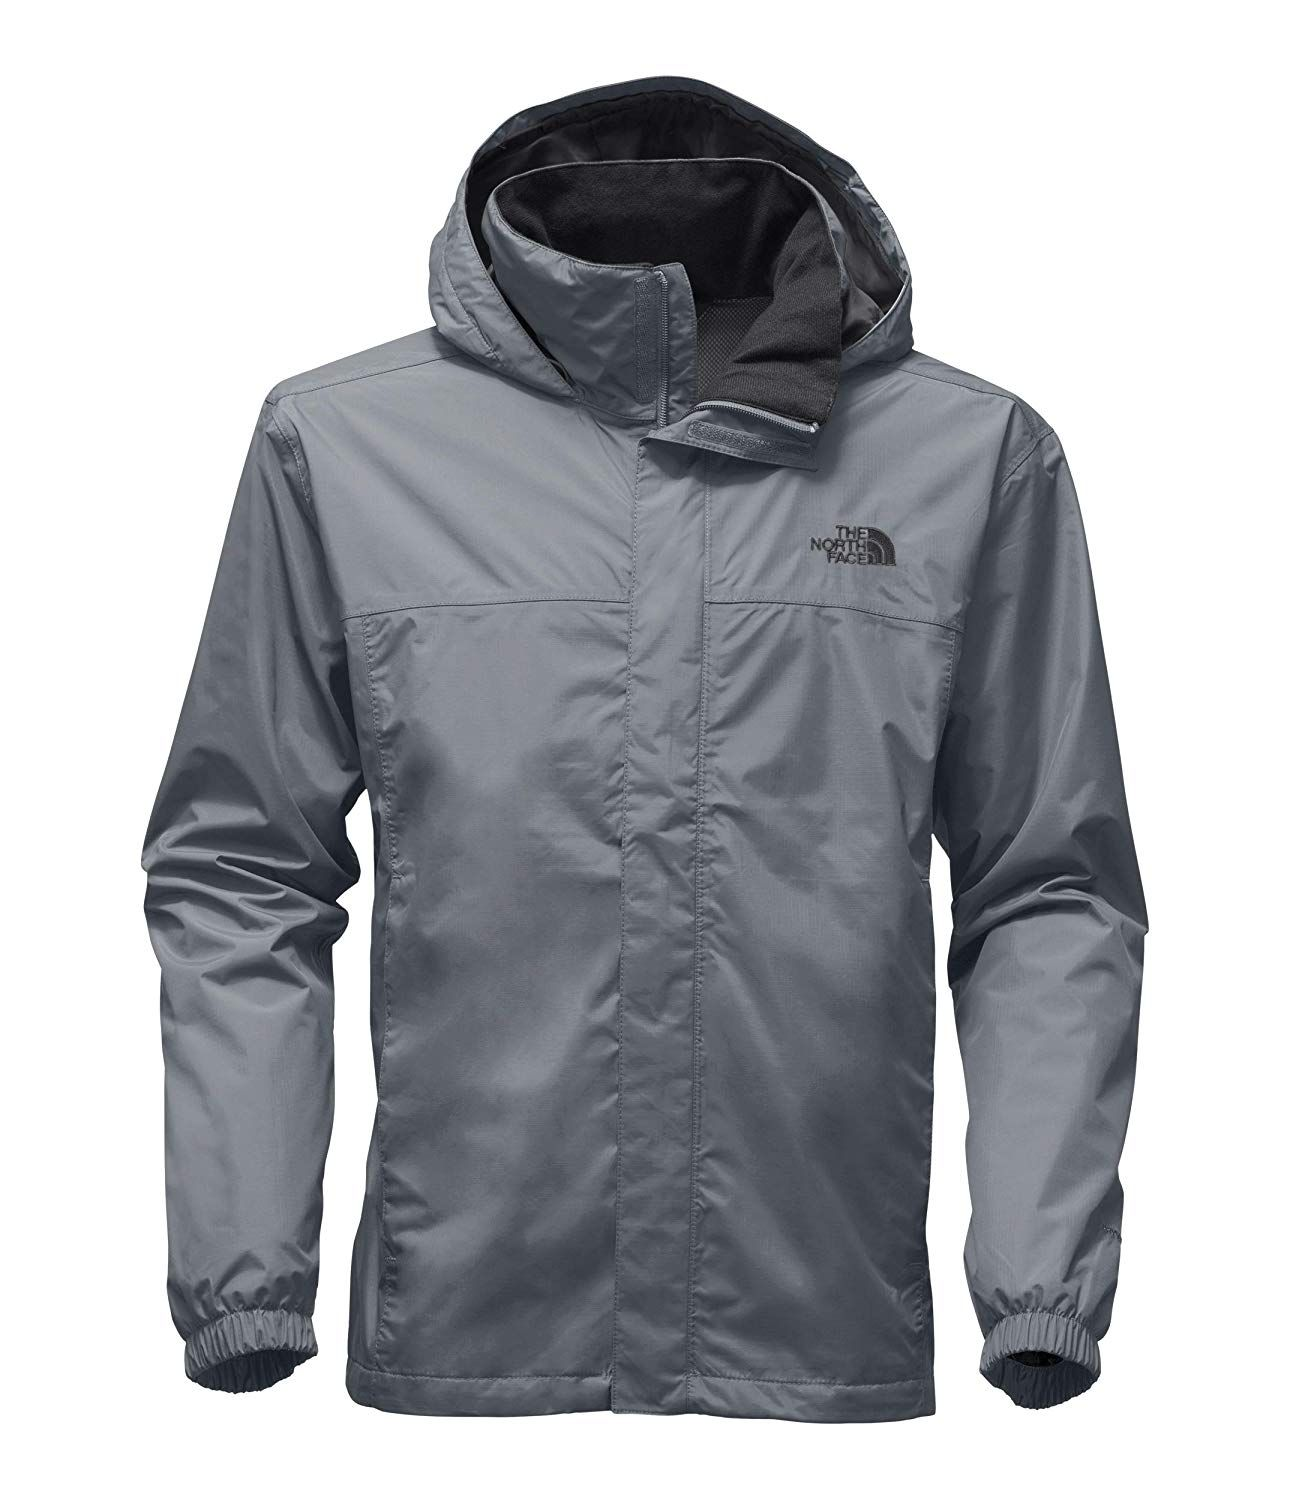 The North Face Men S Resolve 2 Jacket Fabric Imported Dryvent 2l Shell With Mesh Liner This Waterproof Breath North Face Mens Hooded Jacket Men Mens Jackets [ 1500 x 1290 Pixel ]